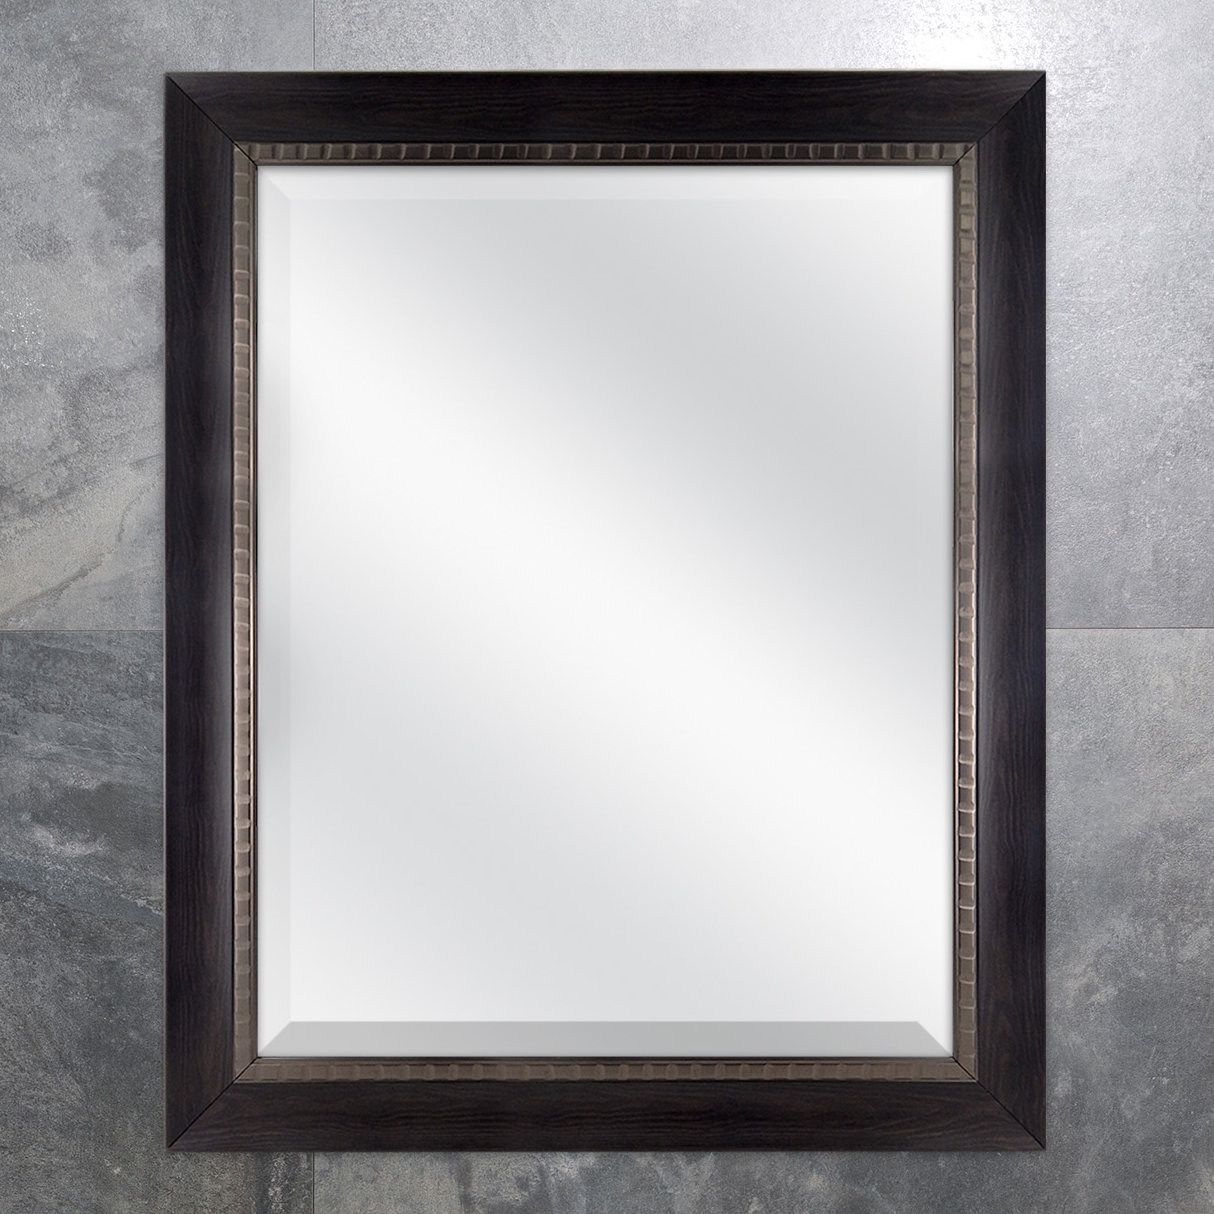 Eclectic Wall & Accent Mirrors | Birch Lane For Reba Accent Wall Mirrors (View 20 of 20)